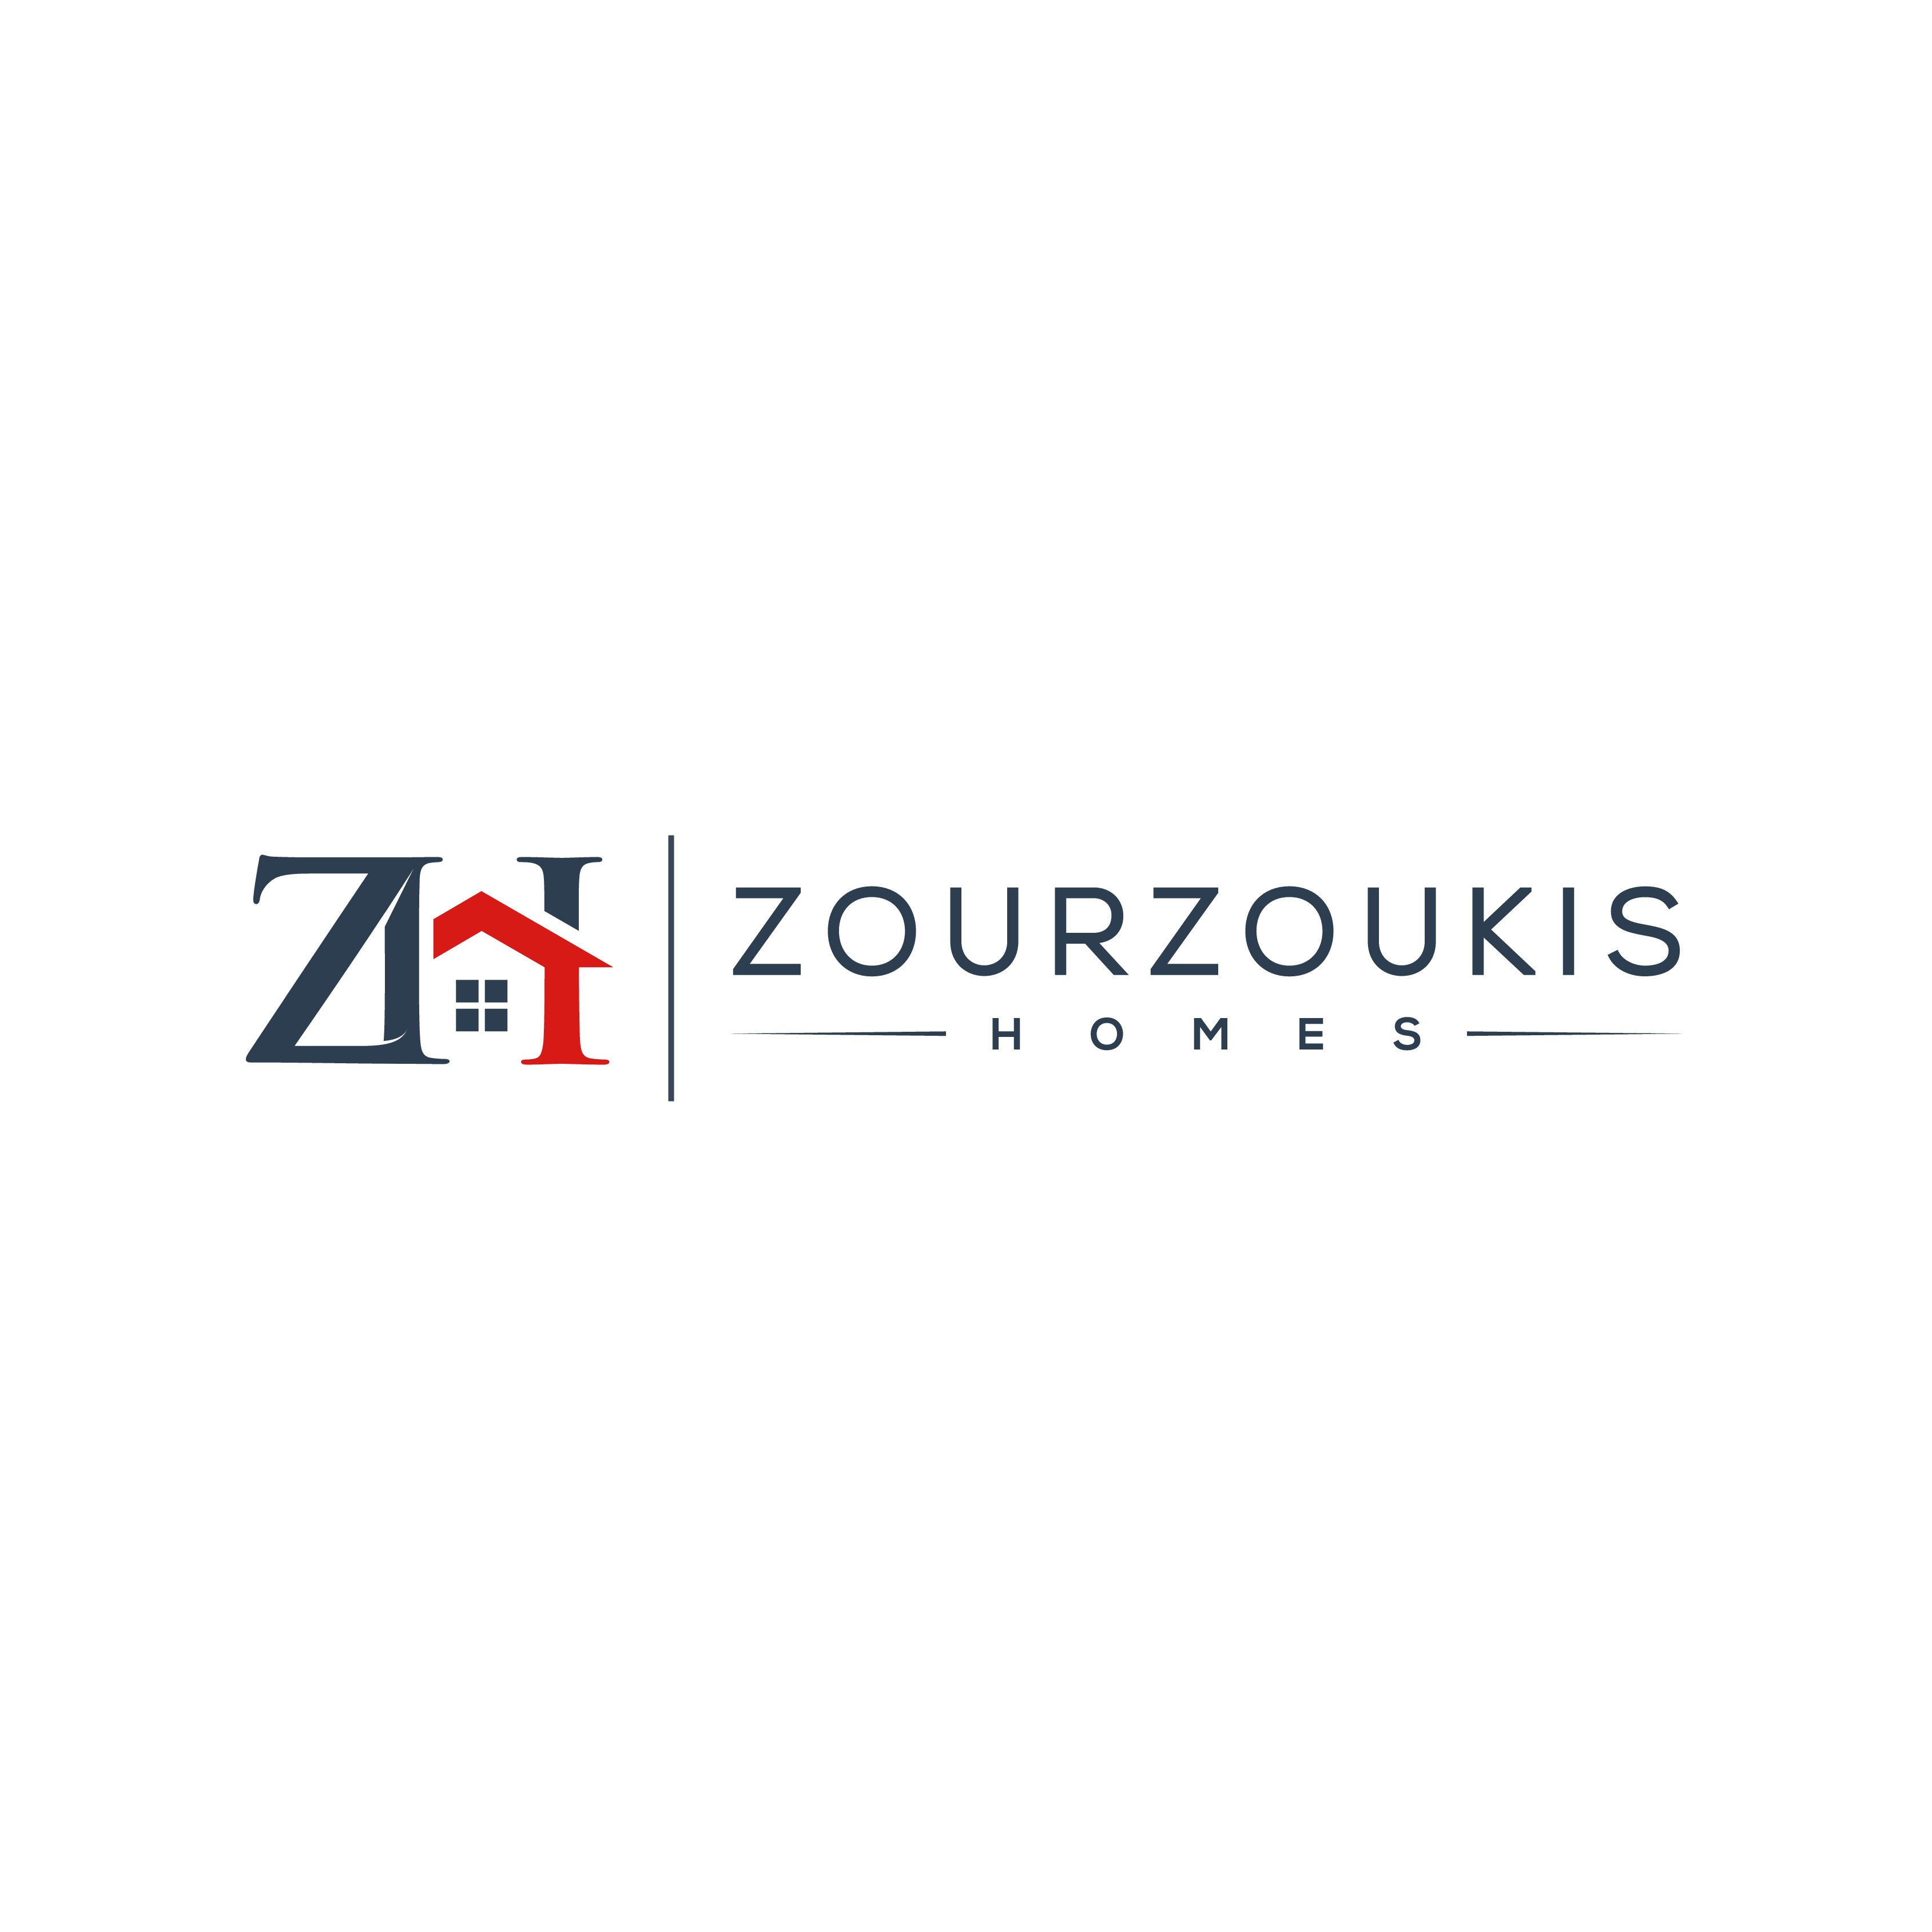 """Homebuilder Logo with Challenging Name """"Zourzoukis Homes"""""""